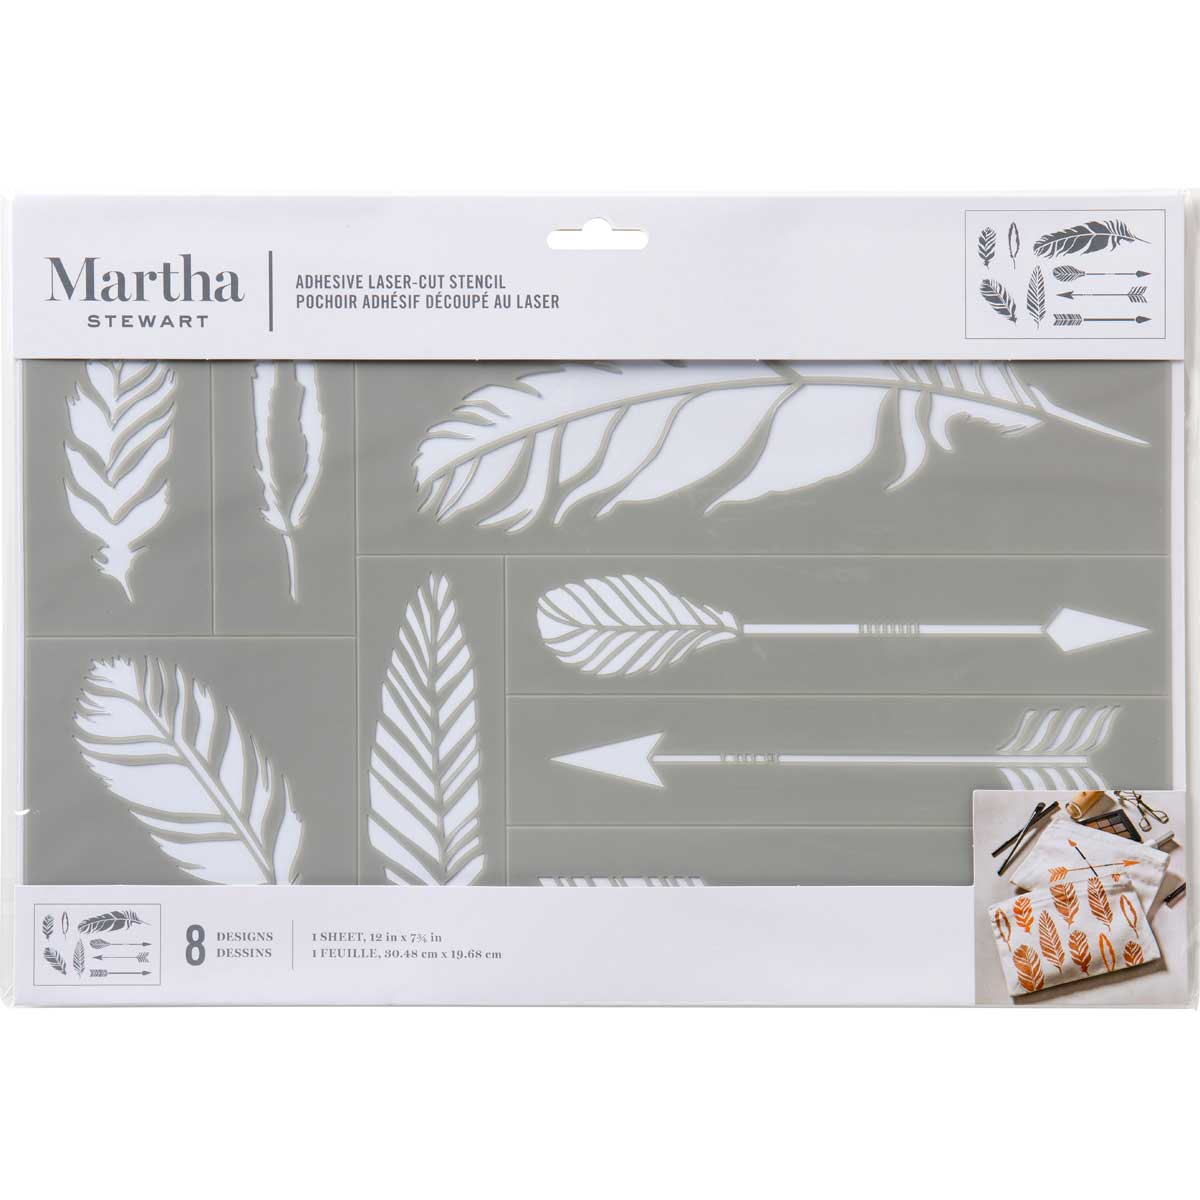 Martha Stewart® Adhesive Stencil - Feathers and Arrows